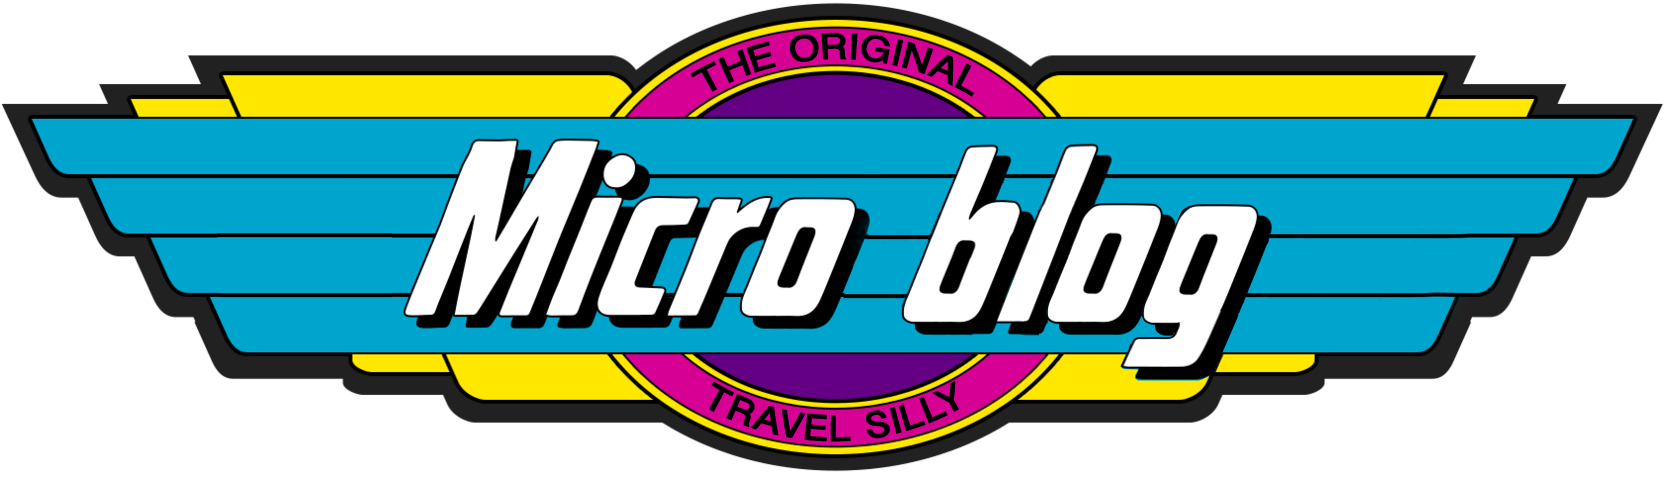 micromachines_logo text FINAL.png